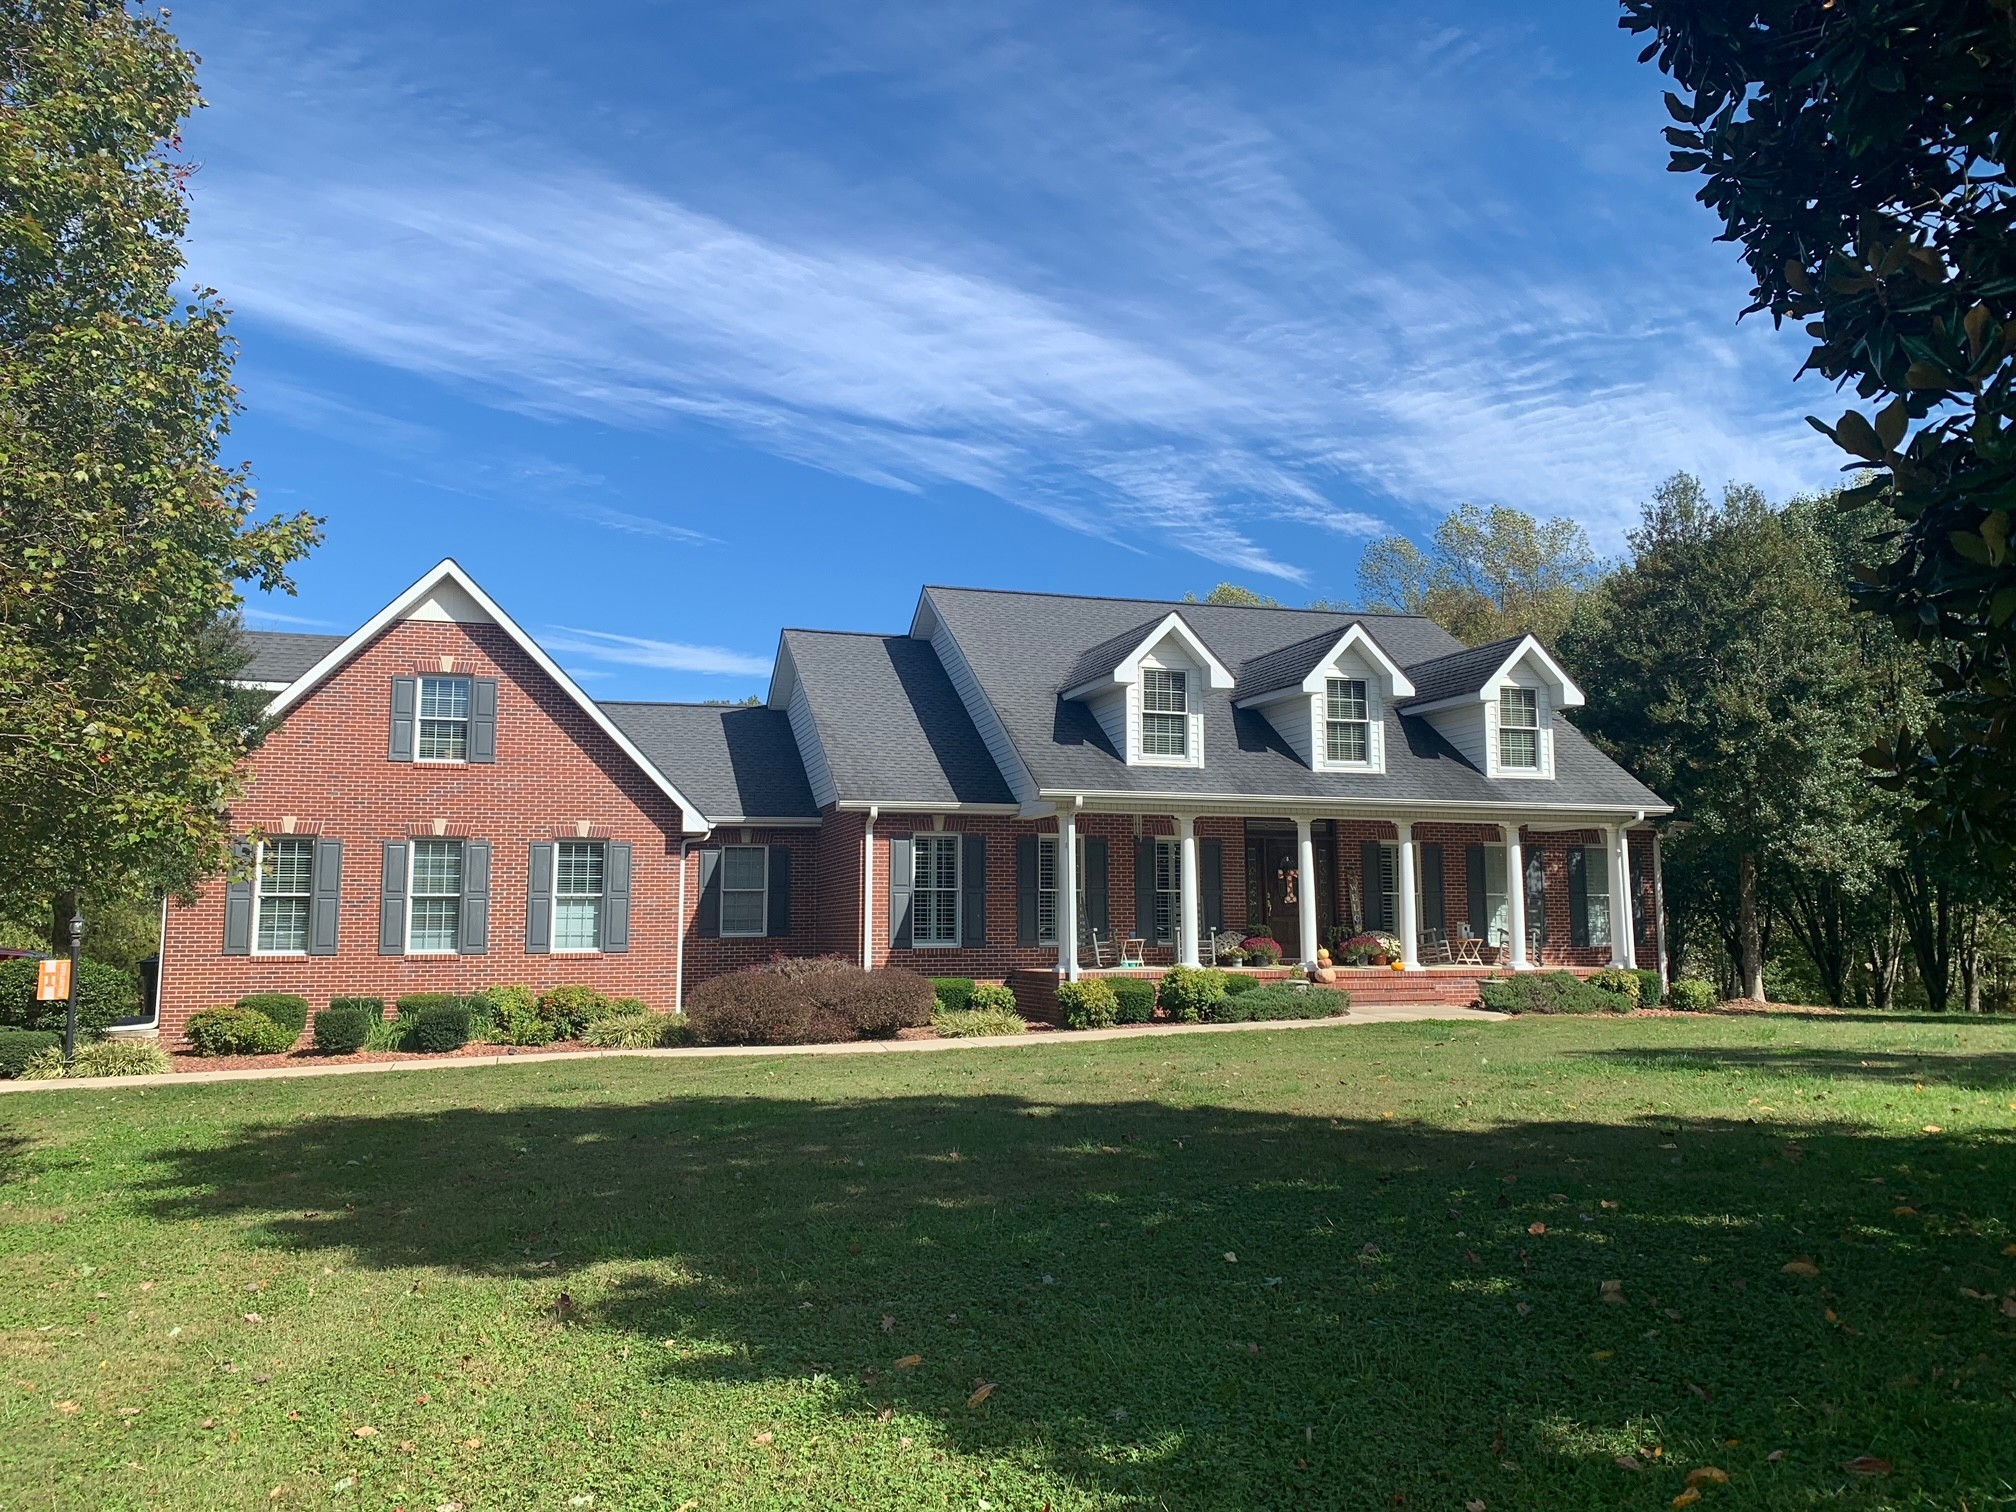 146 Rhoton Rd Property Photo - Manchester, TN real estate listing